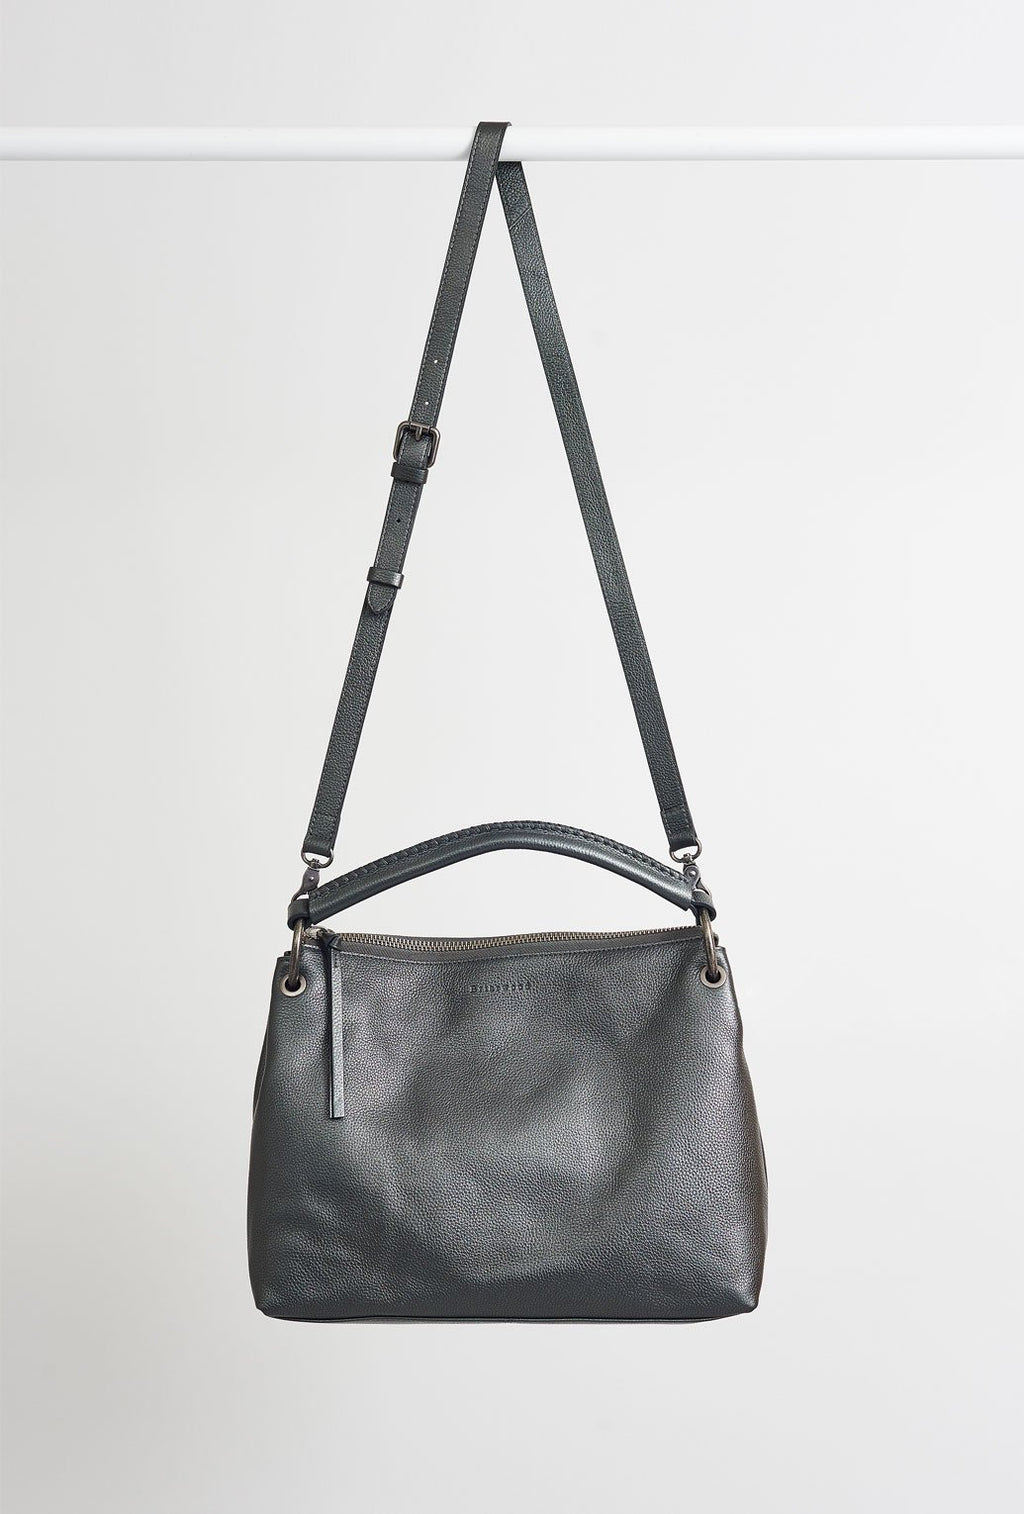 BRIARWOOD PADDINGTON BAG - GUNMETAL